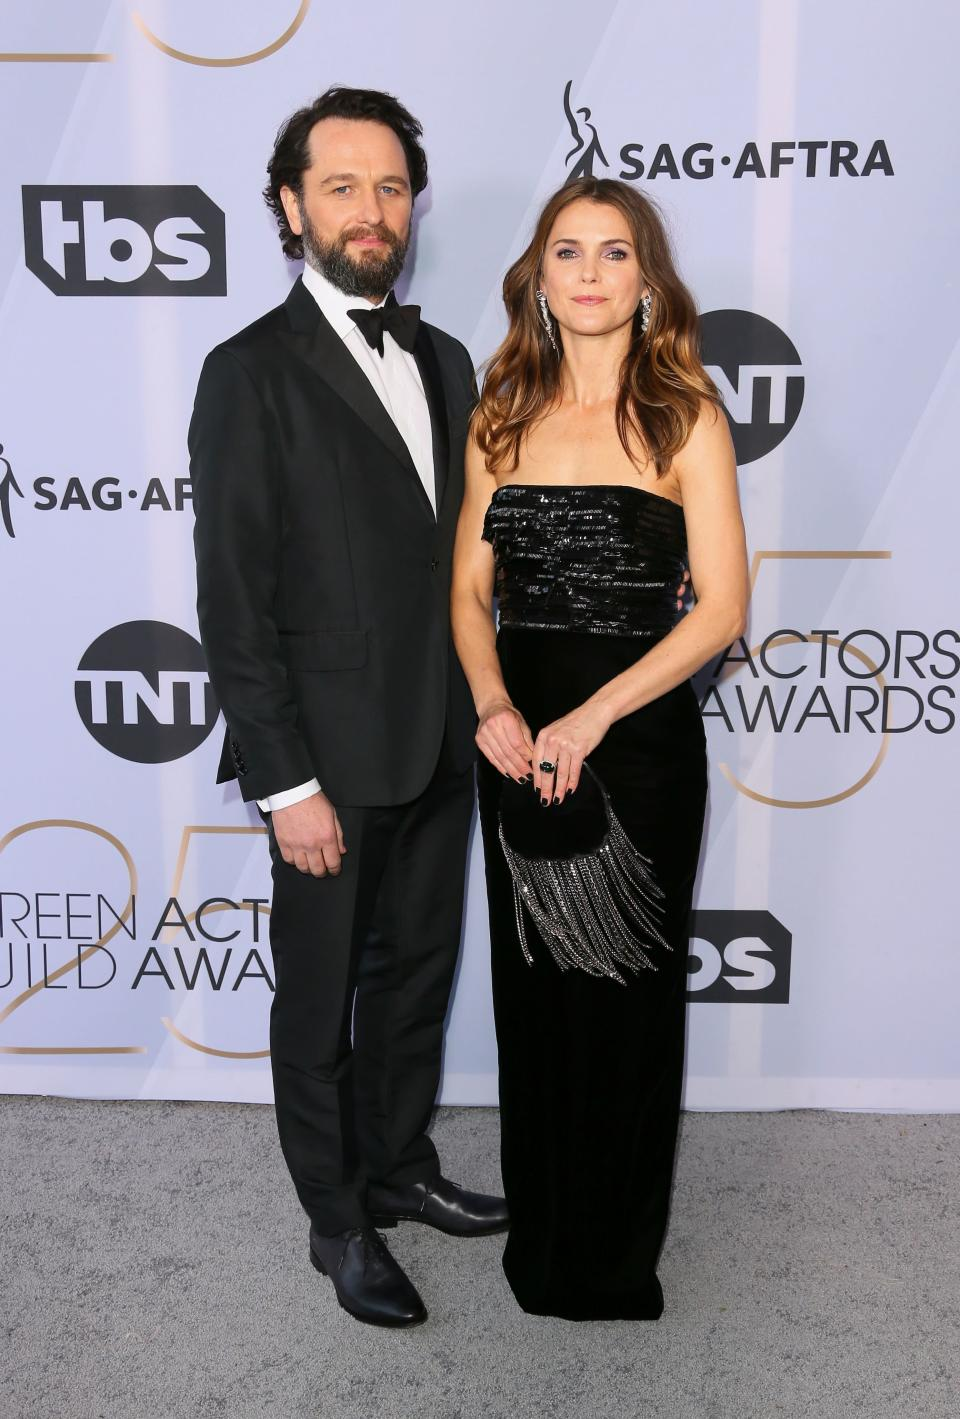 <p><em>The Americans</em> stars and real-life couple Matthew Rhys and Keri Russell attend the 2019 Screen Actors Guild Awards. (Photo: Getty Images) </p>